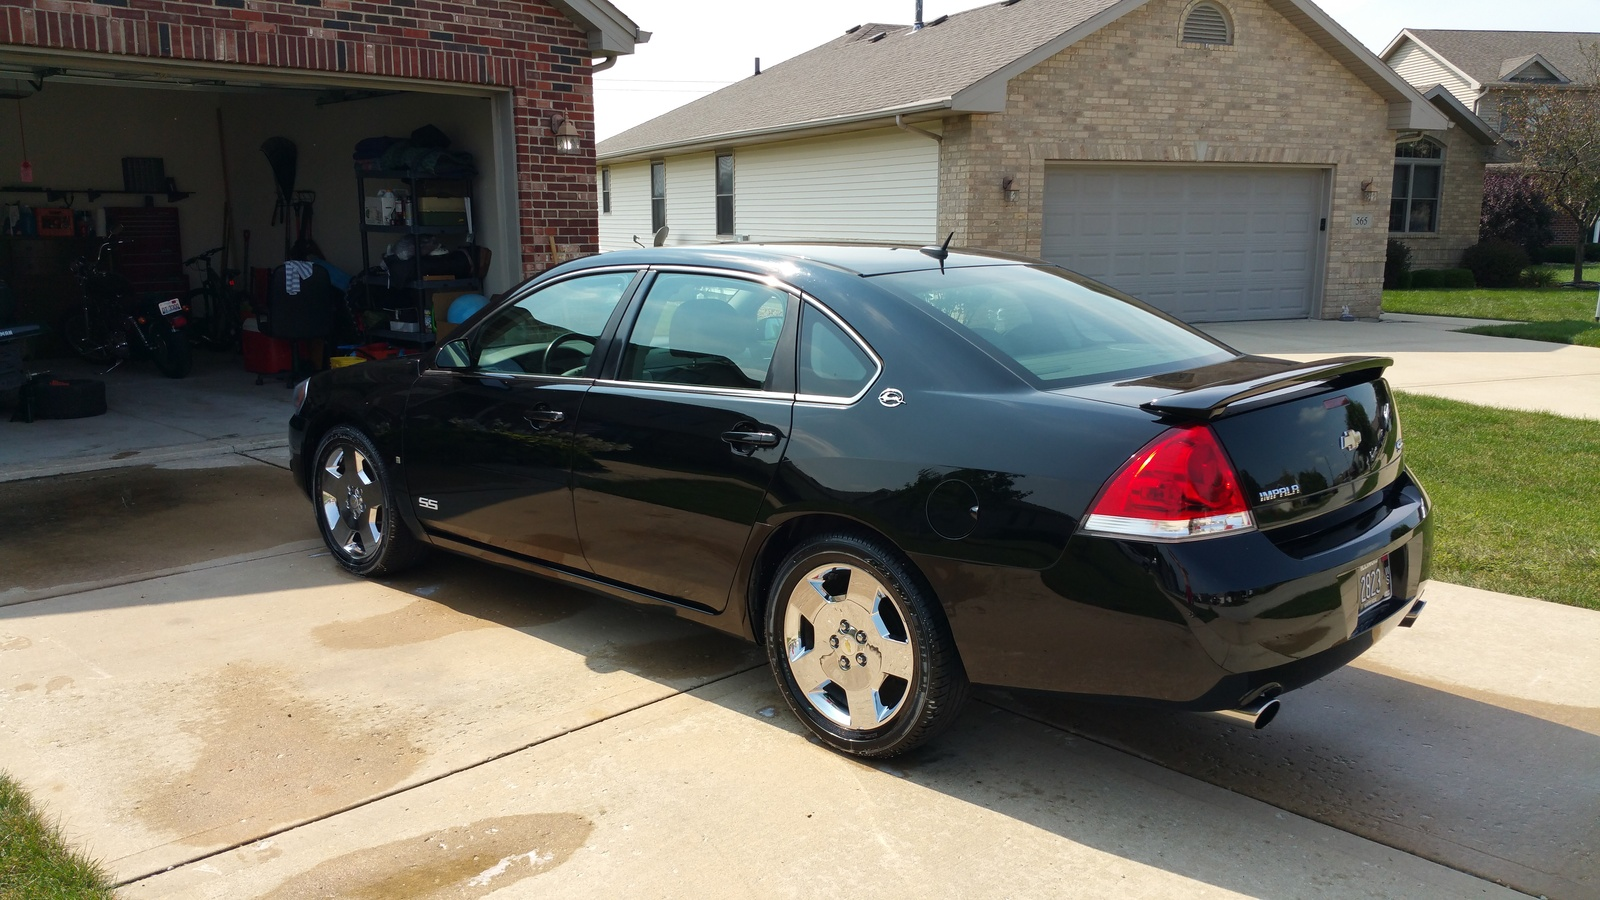 2008 chevrolet impala ss for sale in chicago il cargurus. Black Bedroom Furniture Sets. Home Design Ideas